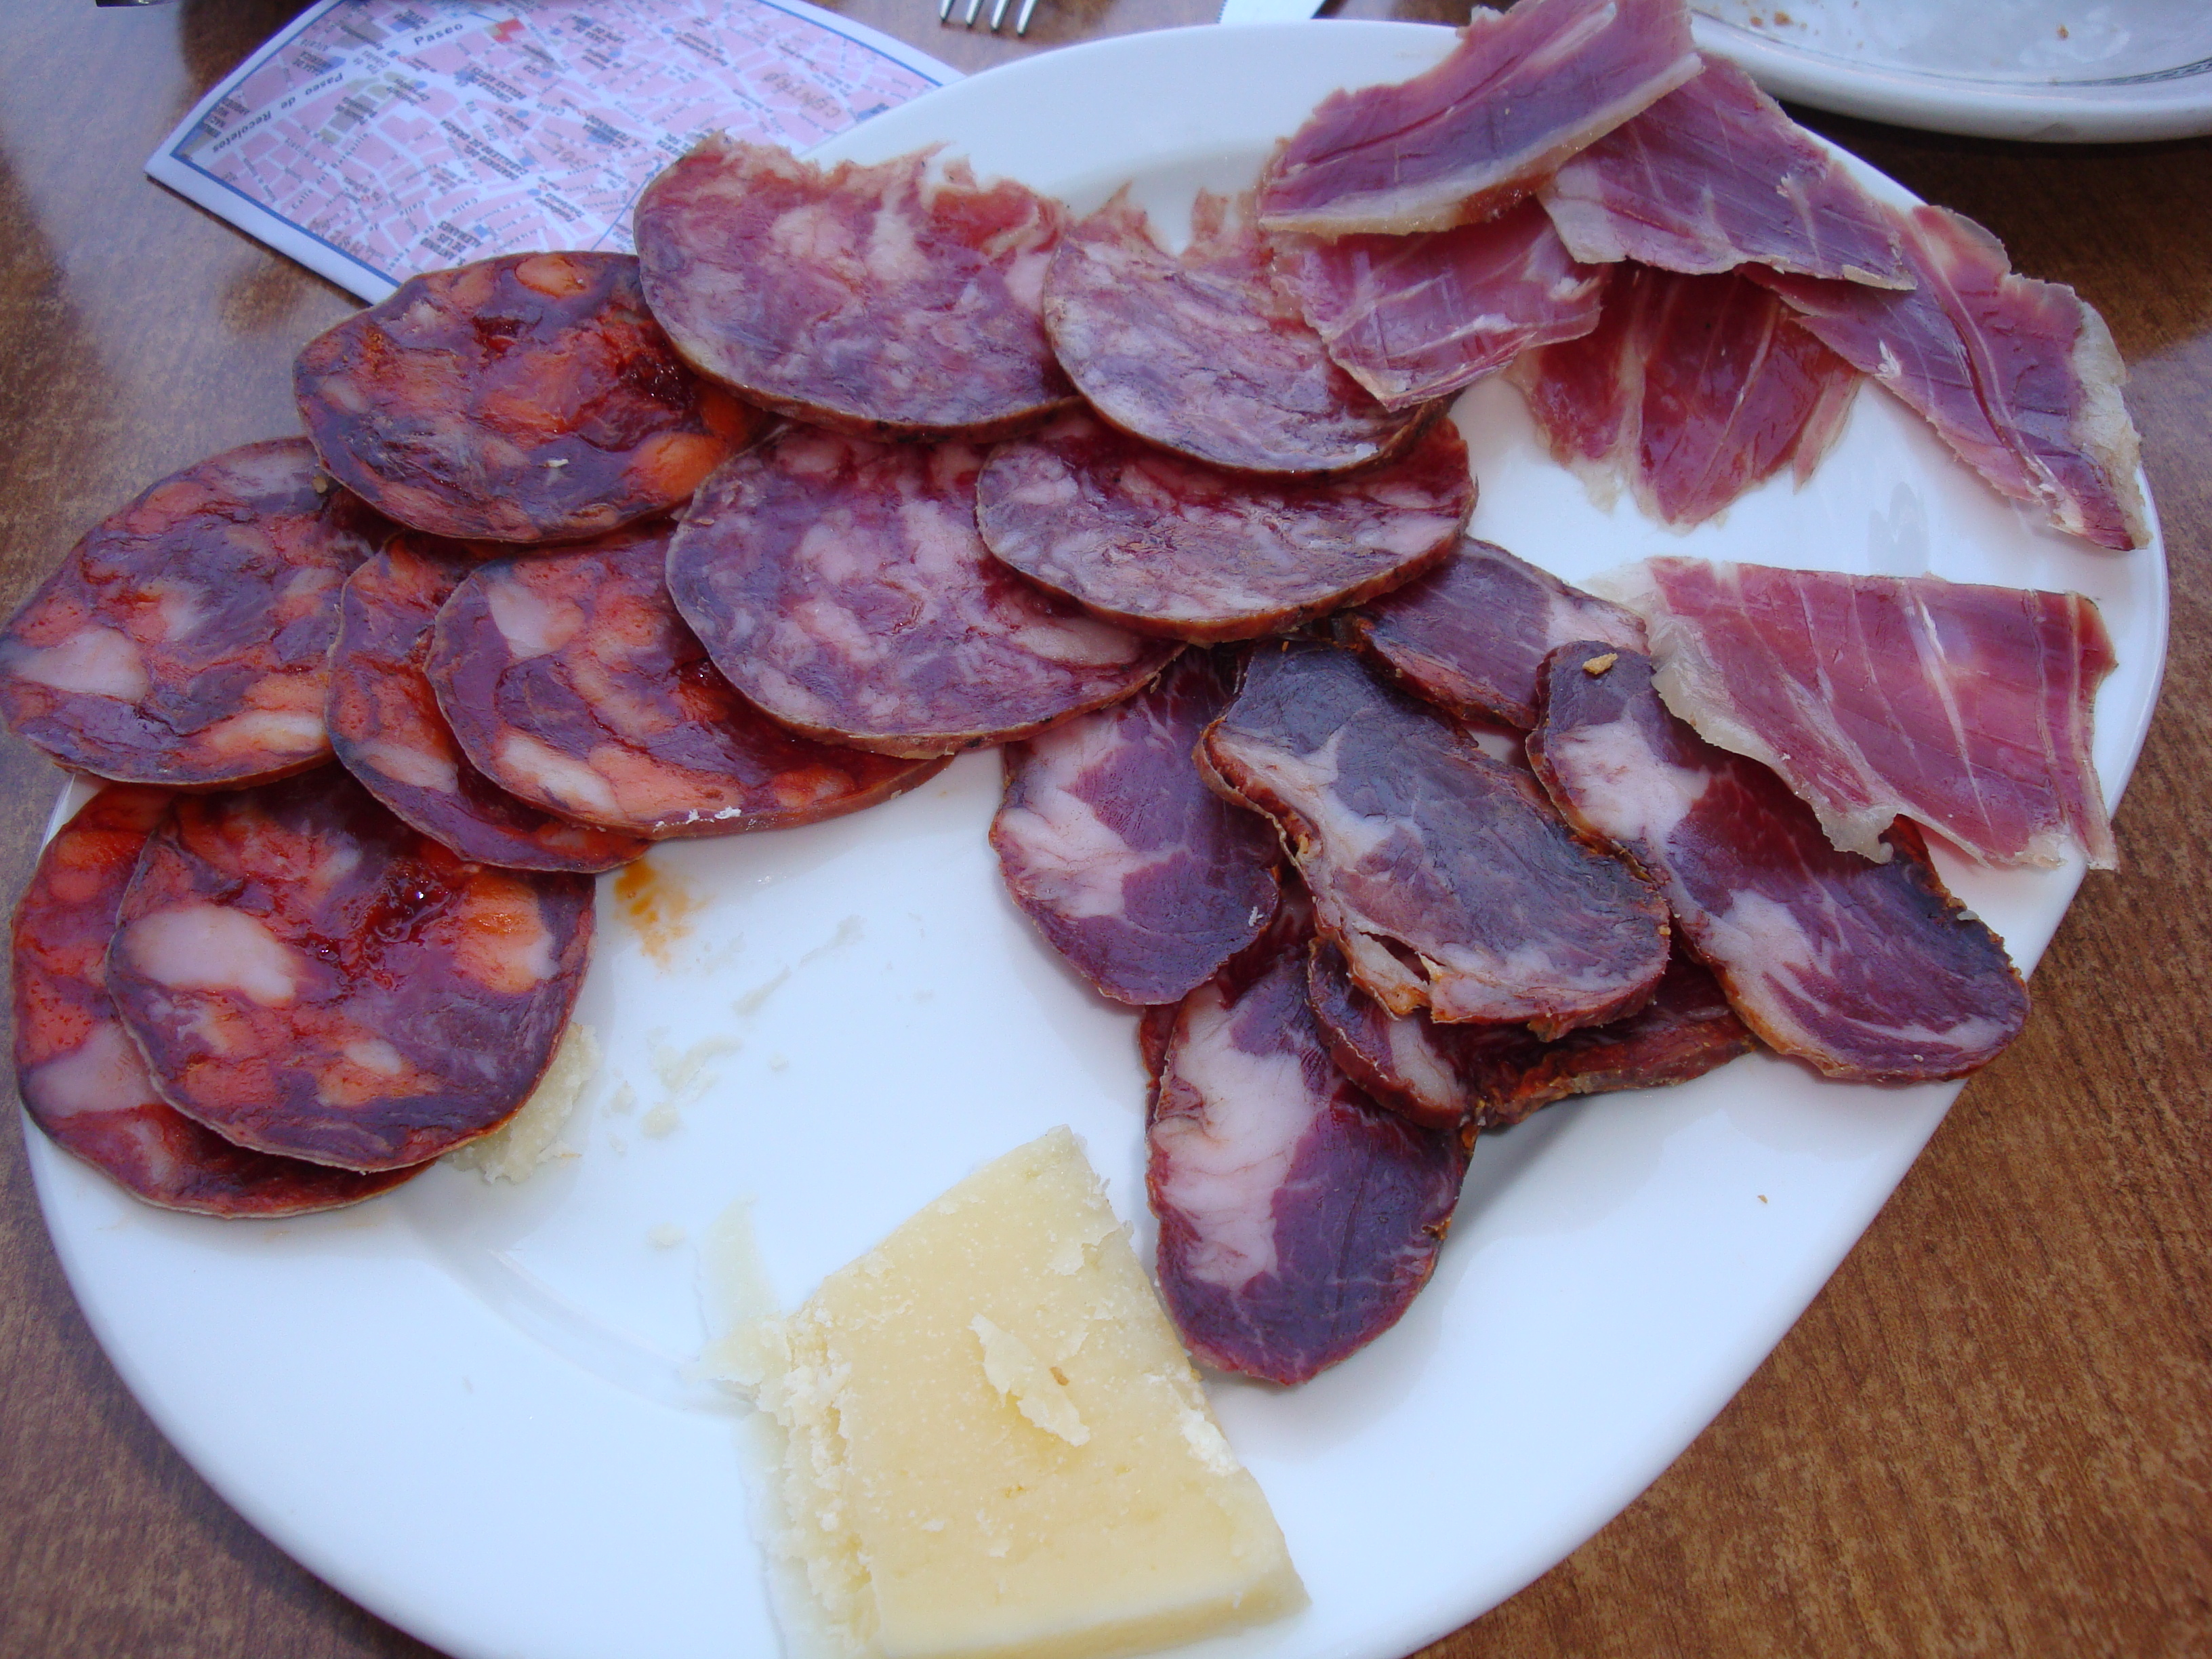 Figure 1.  A bunch of ham and manchego cheese at Plaza Mayor in Madrid, Spain (2014).